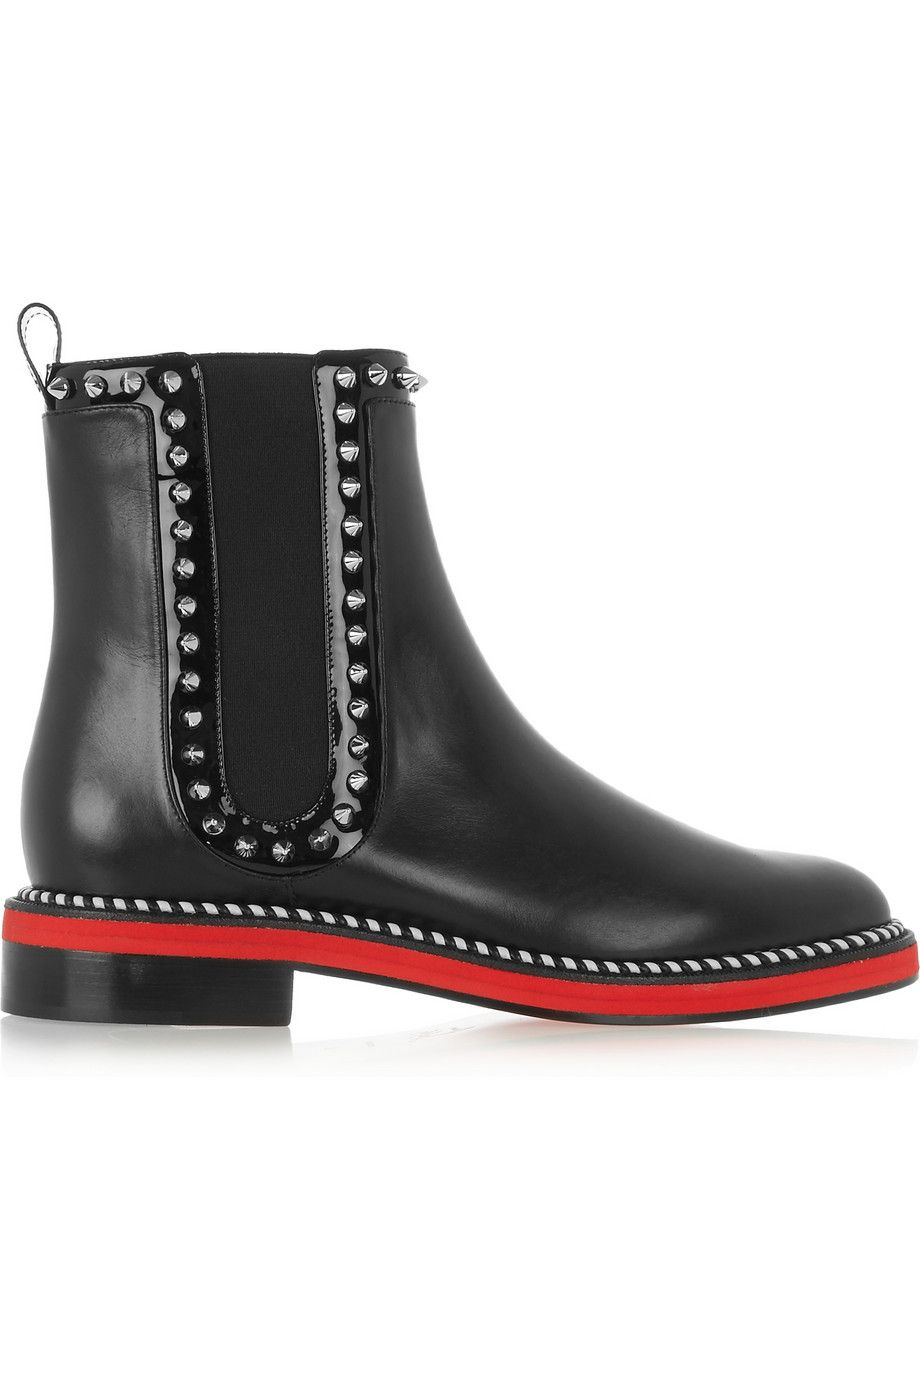 Christian Louboutin - Bottines chelsea en cuir cloutées Notting Hill ... bb98483aadf